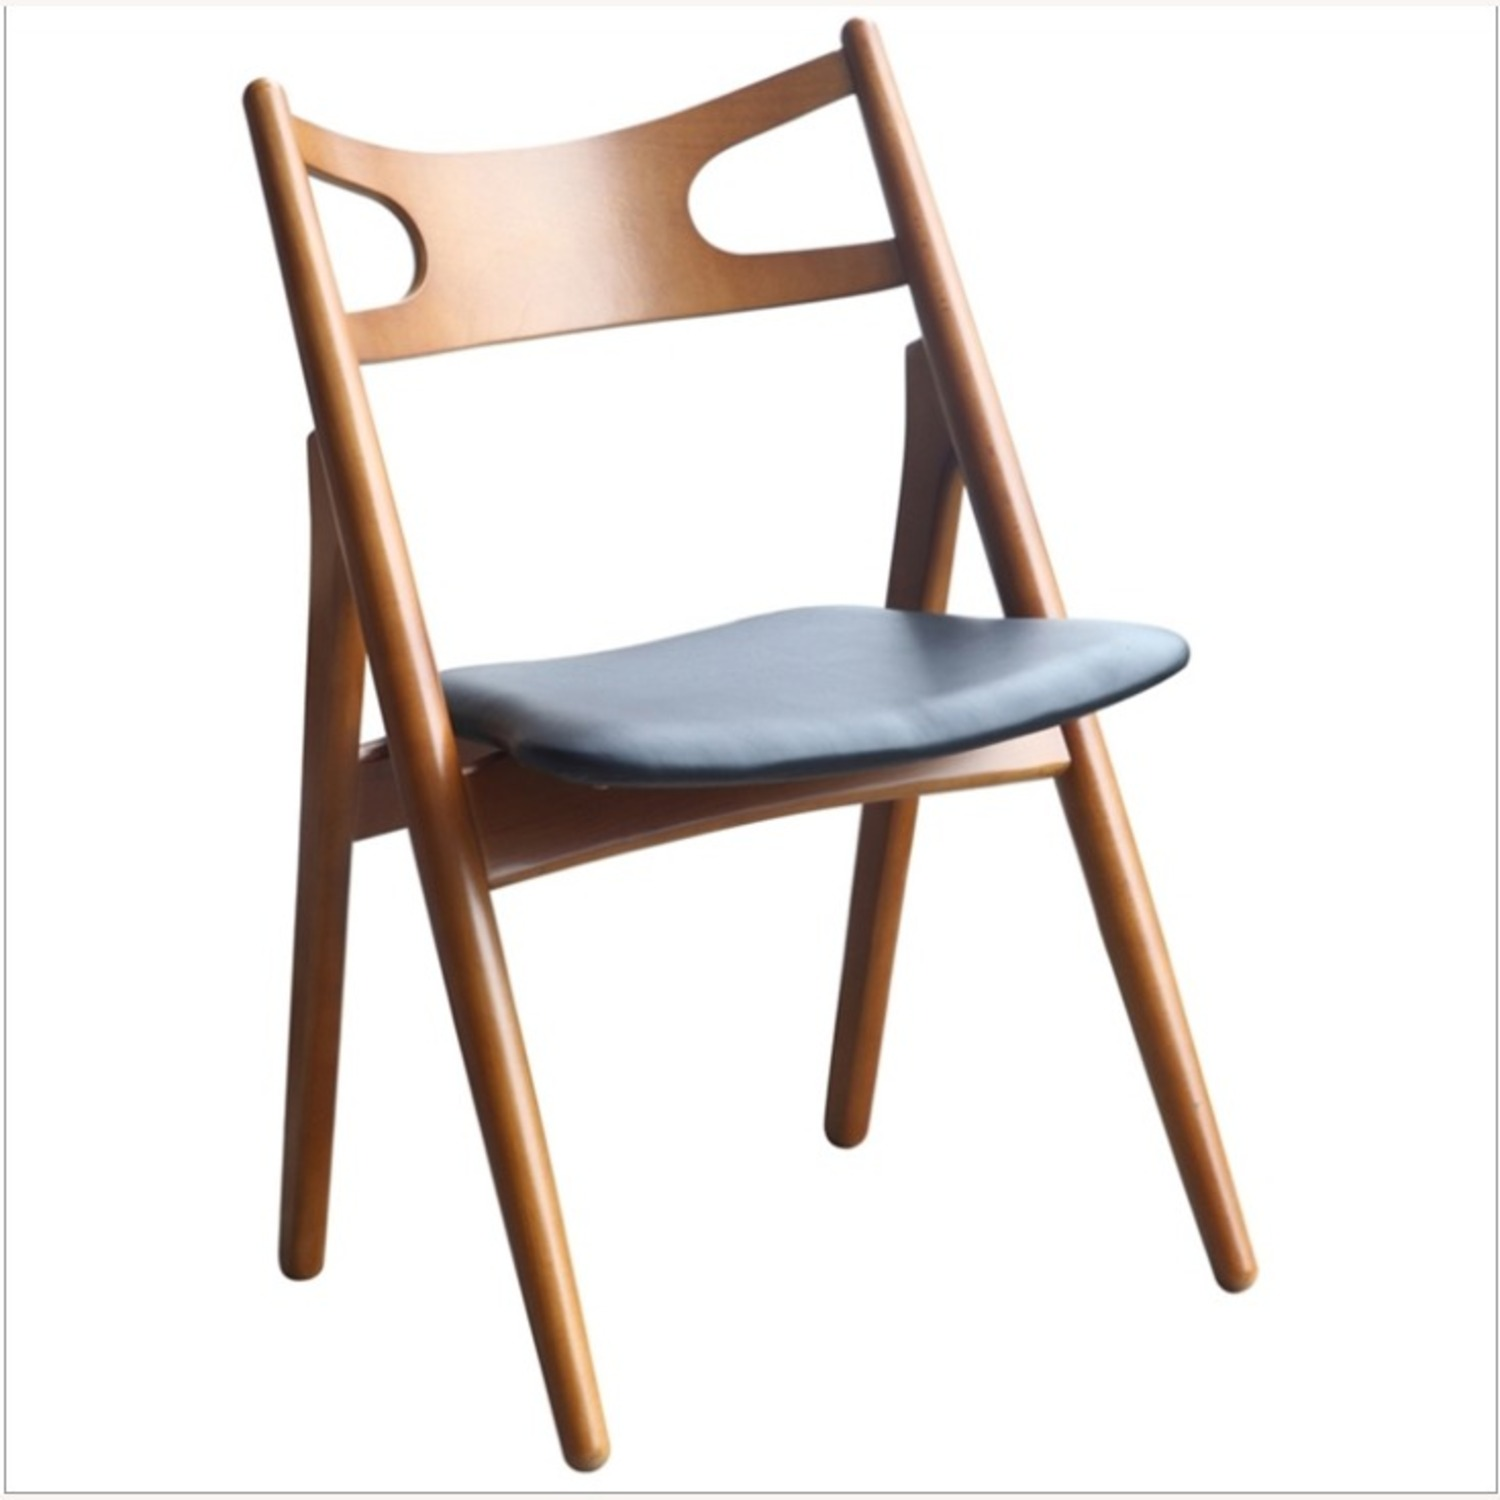 Modern Dining Chair In Walnut Wood Frame - image-0